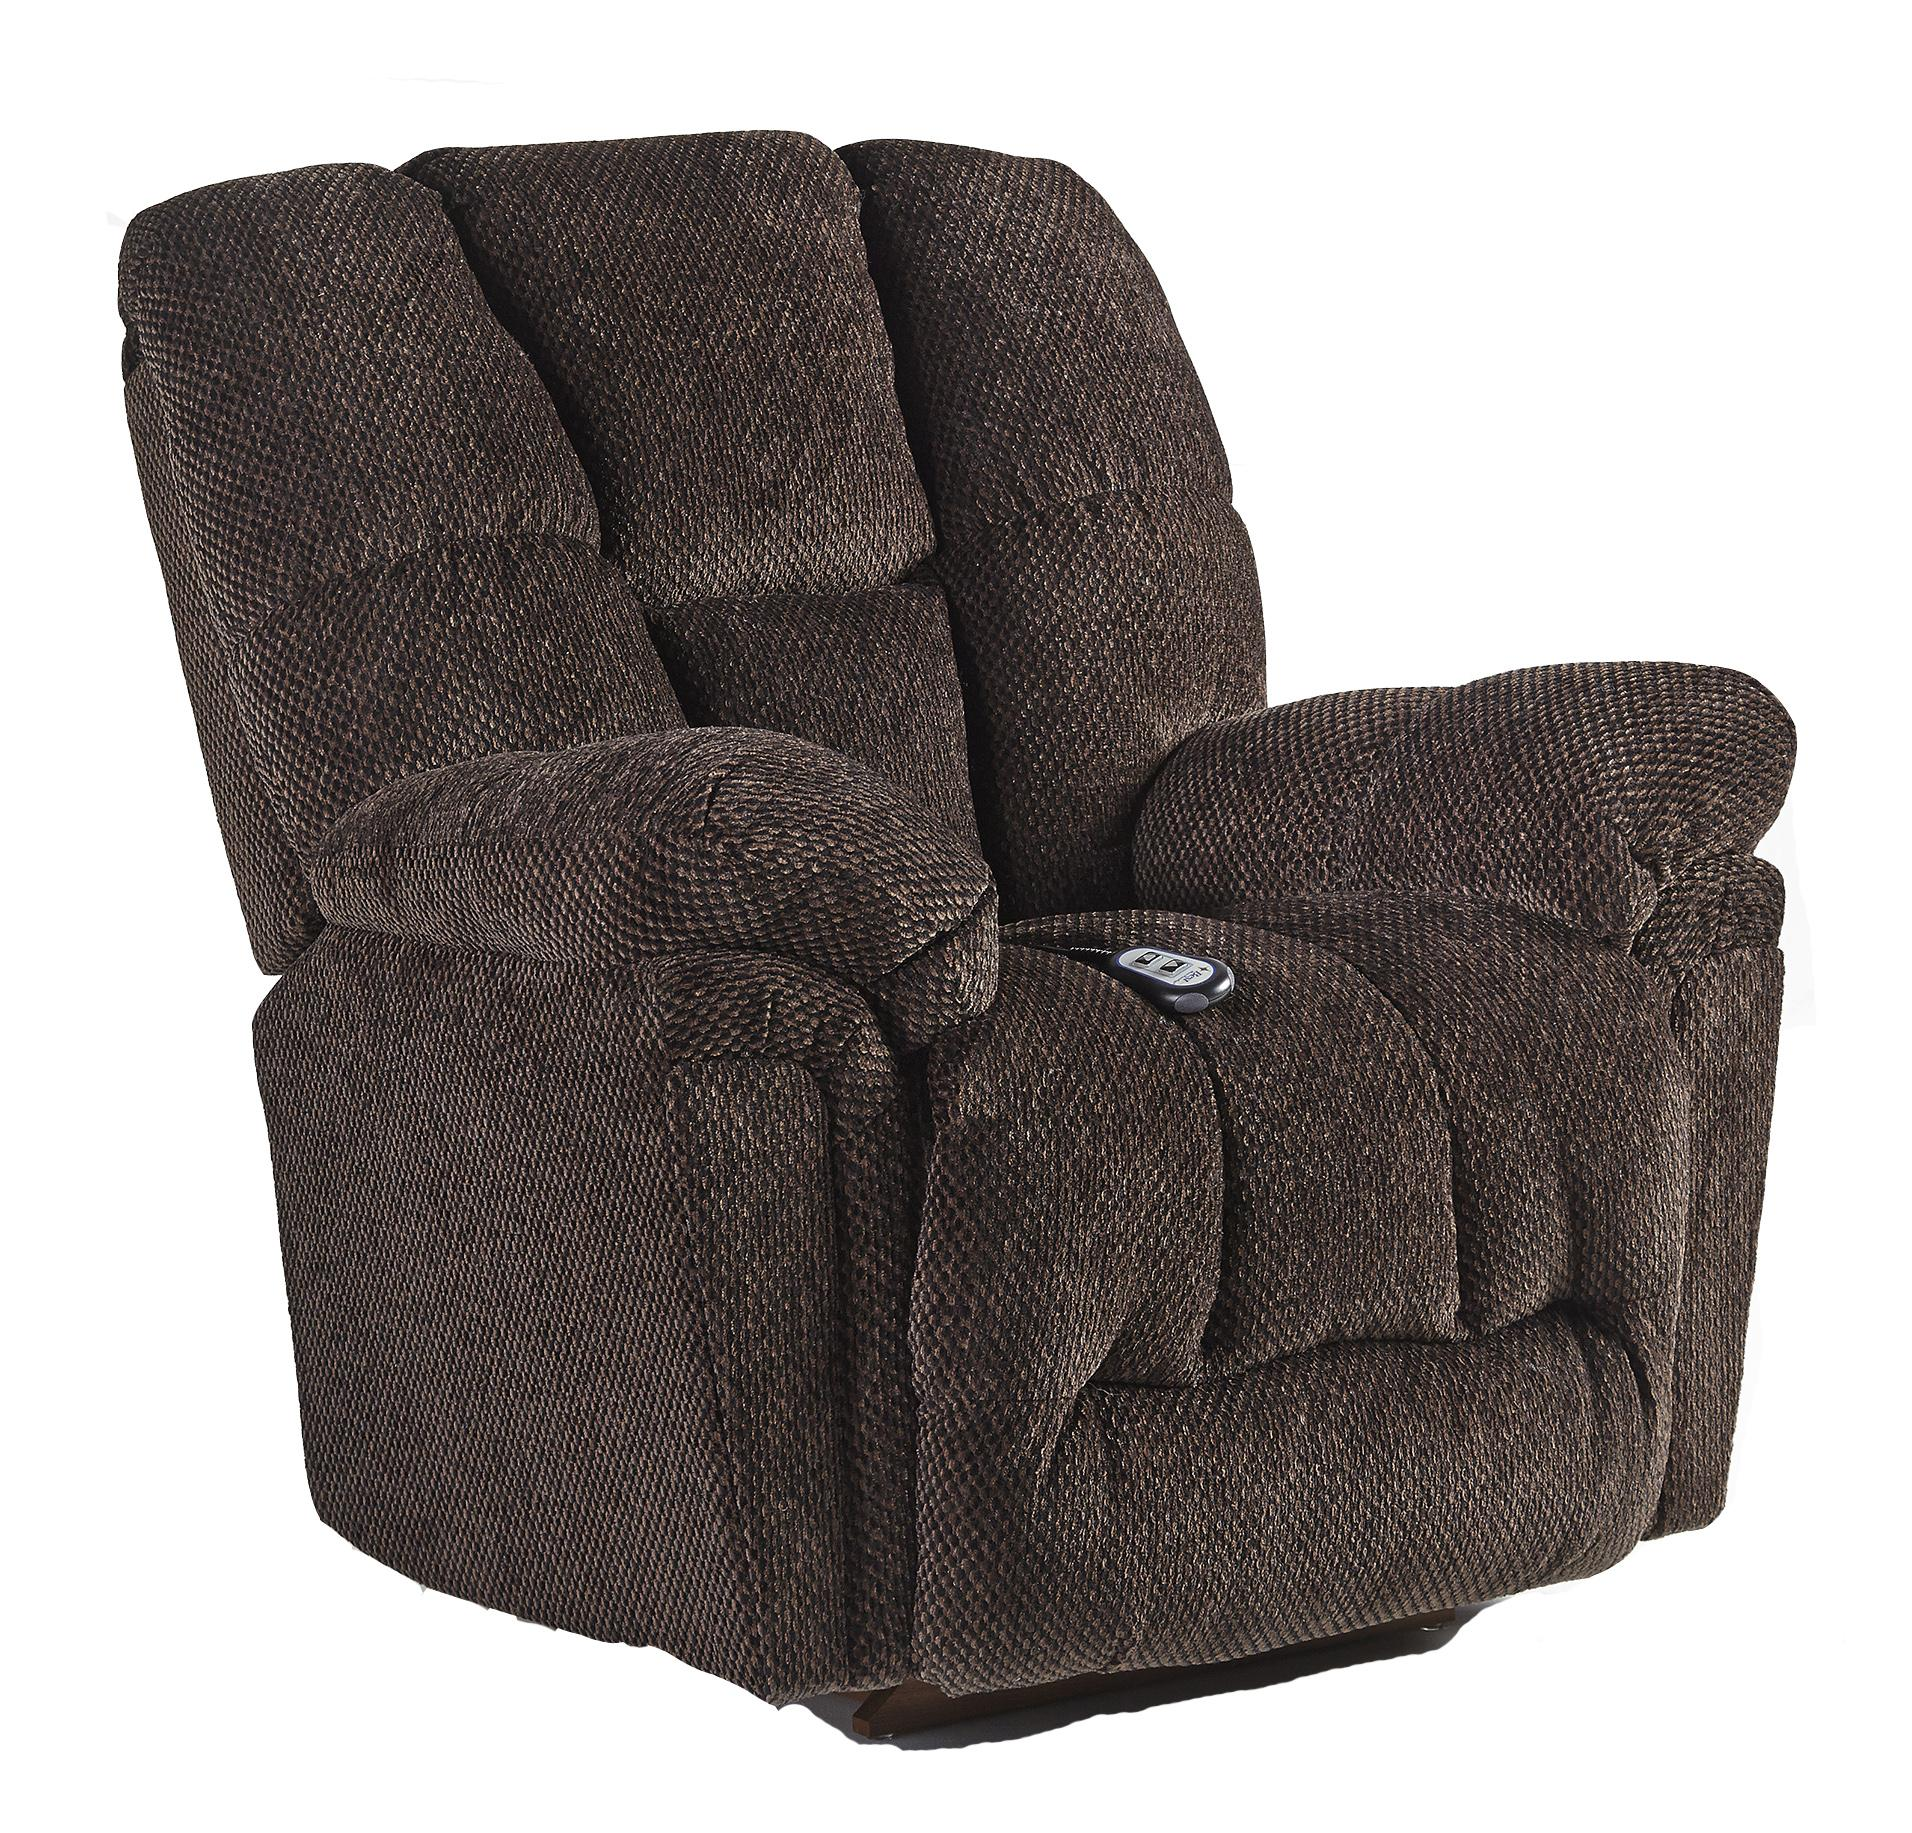 Best Home Furnishings Lucas Swivel Glider Recliner - Item Number: 6M55